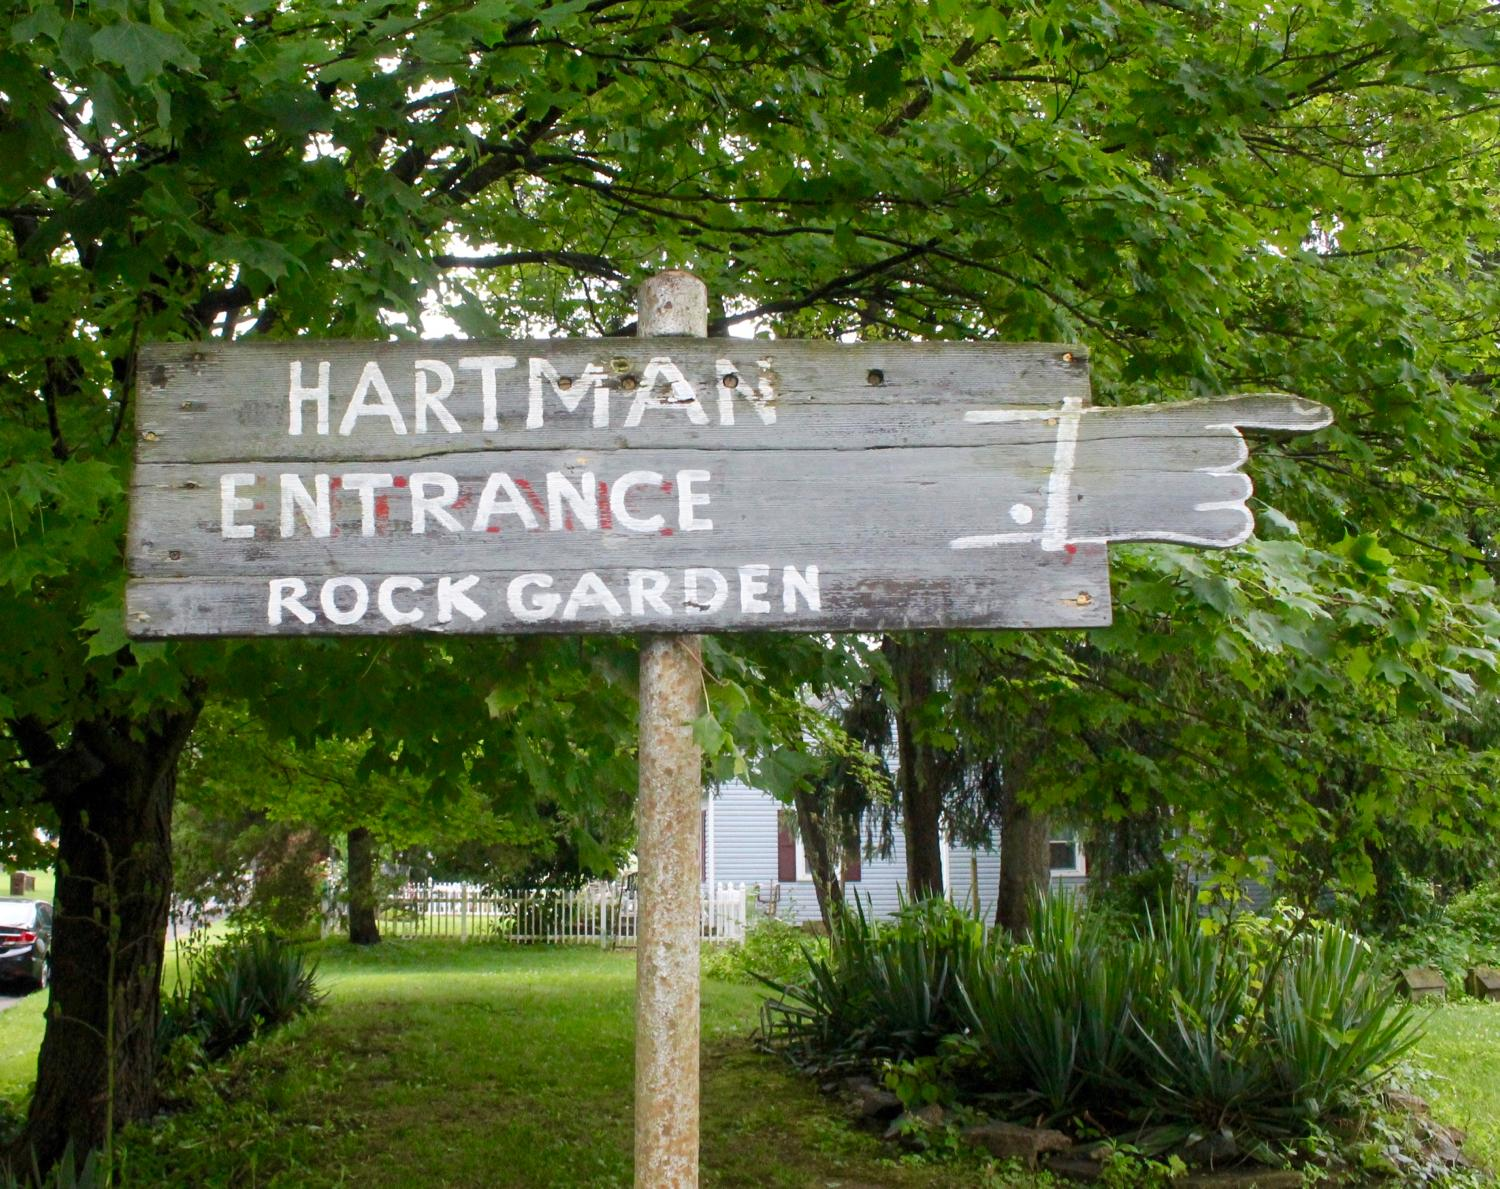 "Hartman Rock Garden, started by Harry George ""Ben"" Hartman in 1932, is a unique garden of stone structures built to represent the themes of history, religion, and patriotism. What started as just a cement fishing pond in Ben's backyard transformed into a work of art containing 50+ structures, a variety of plants, and handmade figurines. Hartman Rock Garden is open 365 days a year from dawn to dusk, and while there is no fee to enter, donations are strongly encouraged to help support the care and upkeep of the garden. It is 80 miles north of Cincinnati. ADDRESS: 1905 Russell Ave, Springfield, OH 45506 / Image: Rose Brewington // Published: 8.8.17"